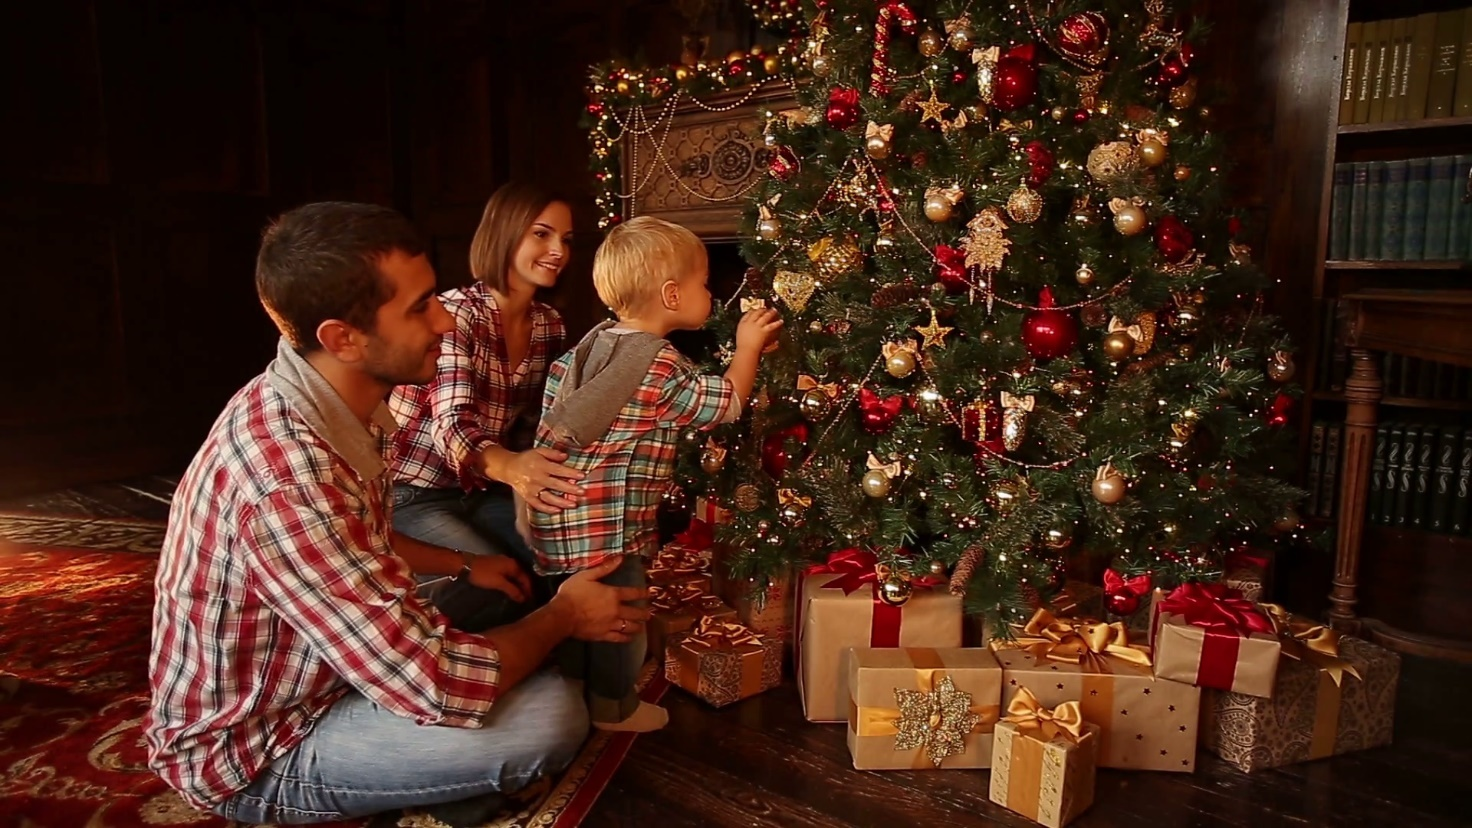 Decorating your home for Christmas with your family